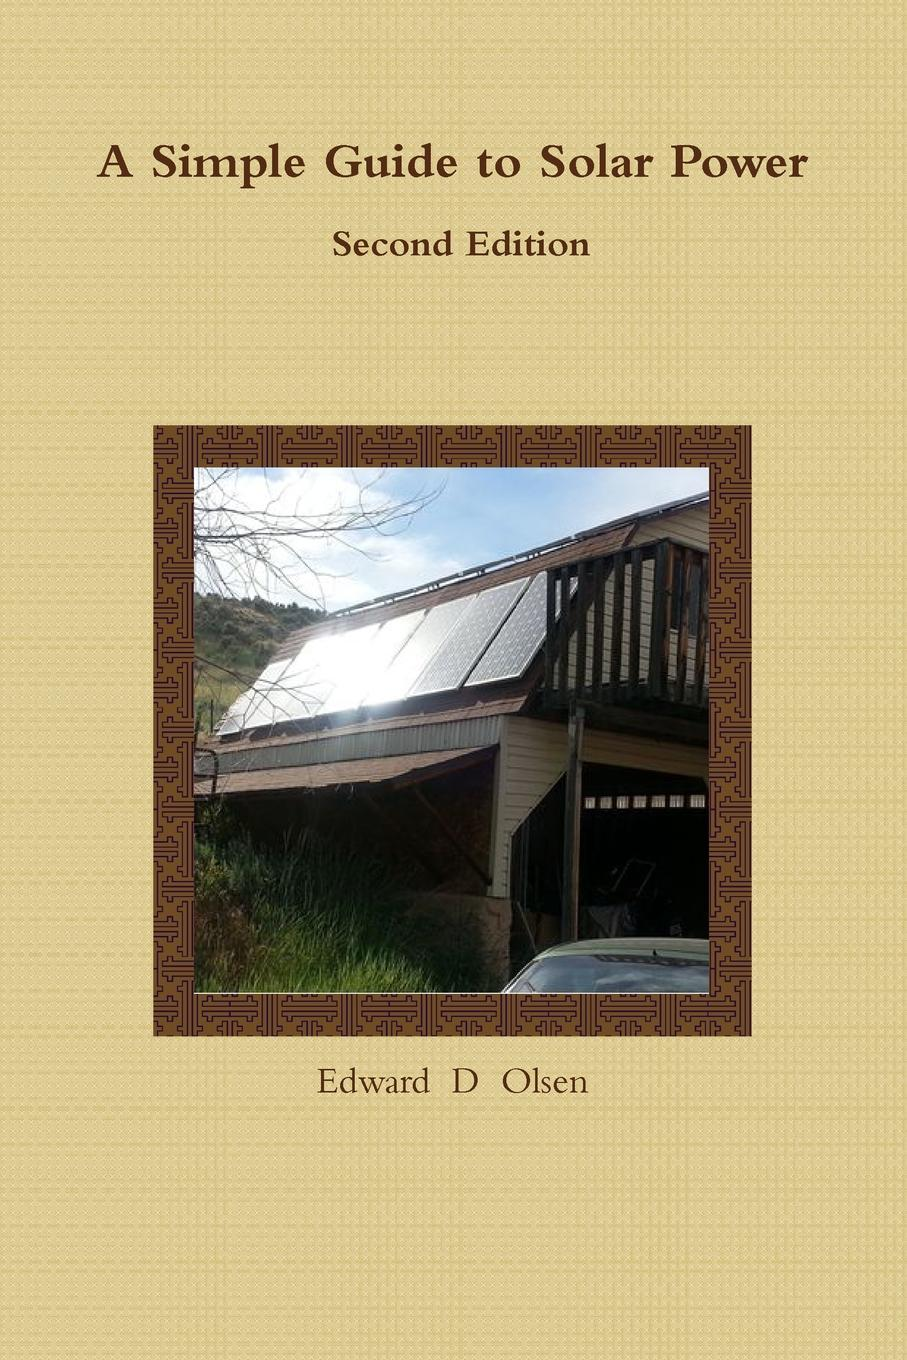 Edward Olsen A Simple Guide to Solar Power - Second Edition аккумулятор для телефона ibatt ib bl192 m589